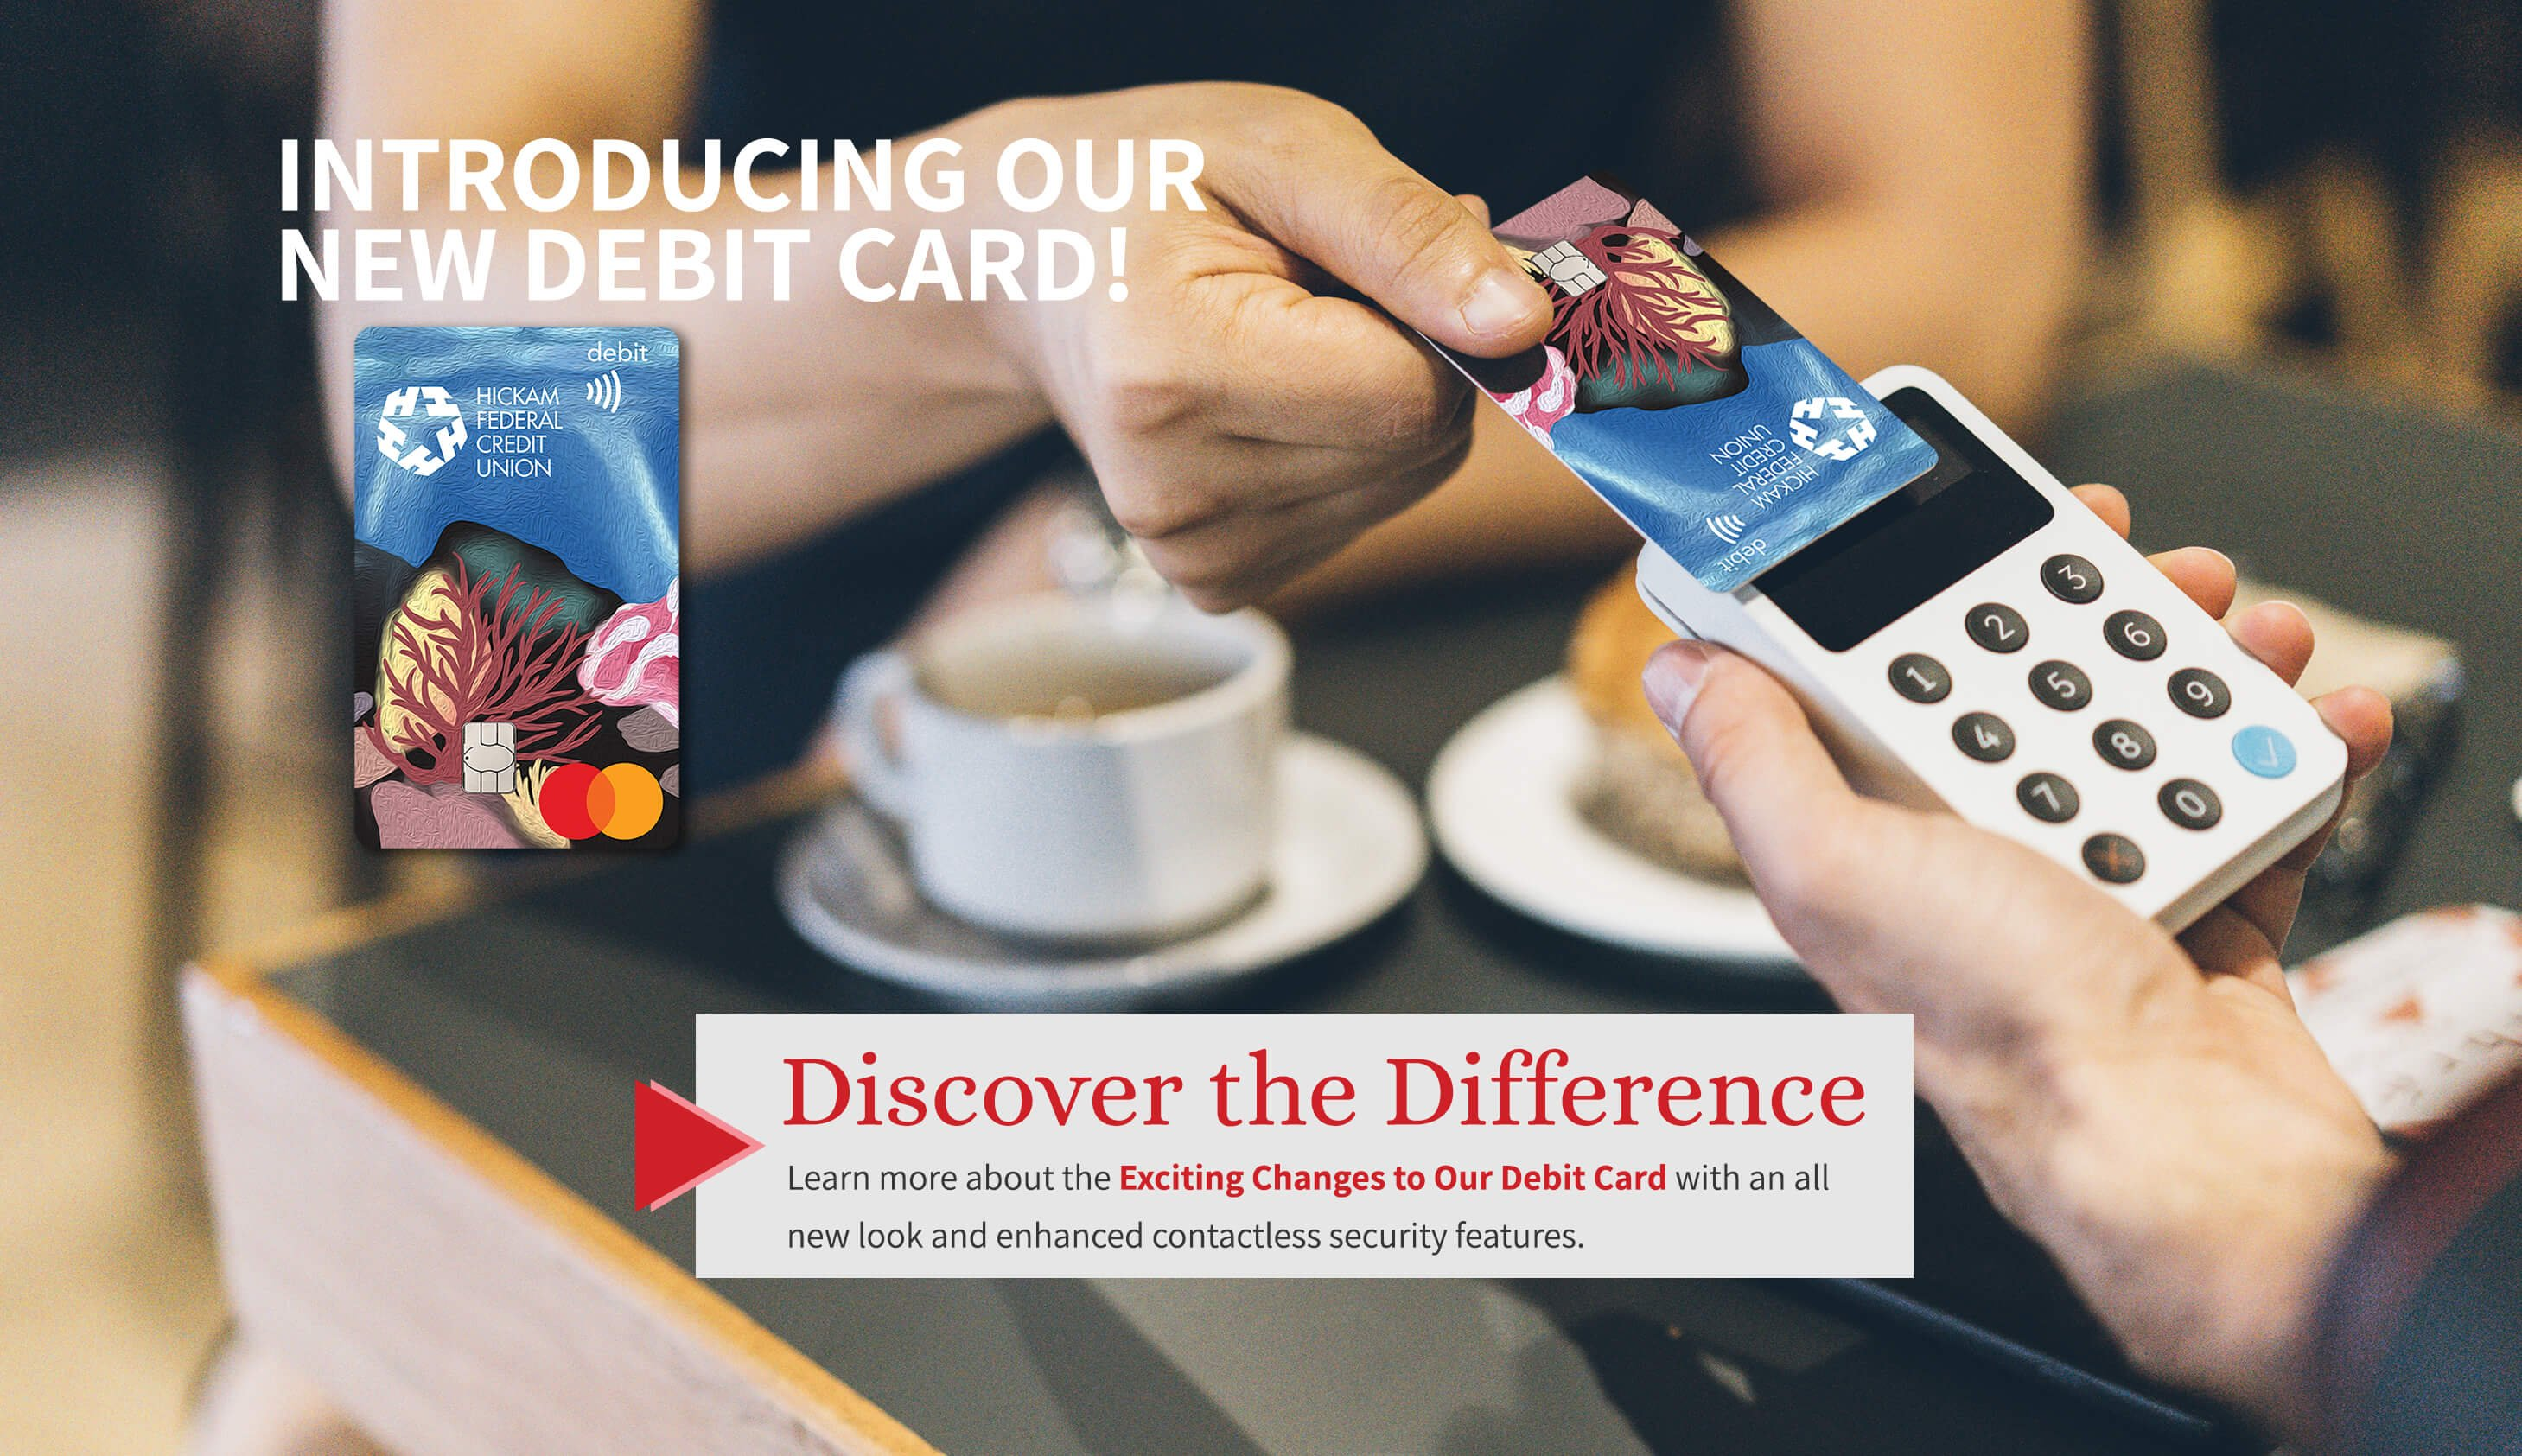 Discover the Difference. Learn more about the exciting changes to our debit card with an all new look and enhanced contactless security features.